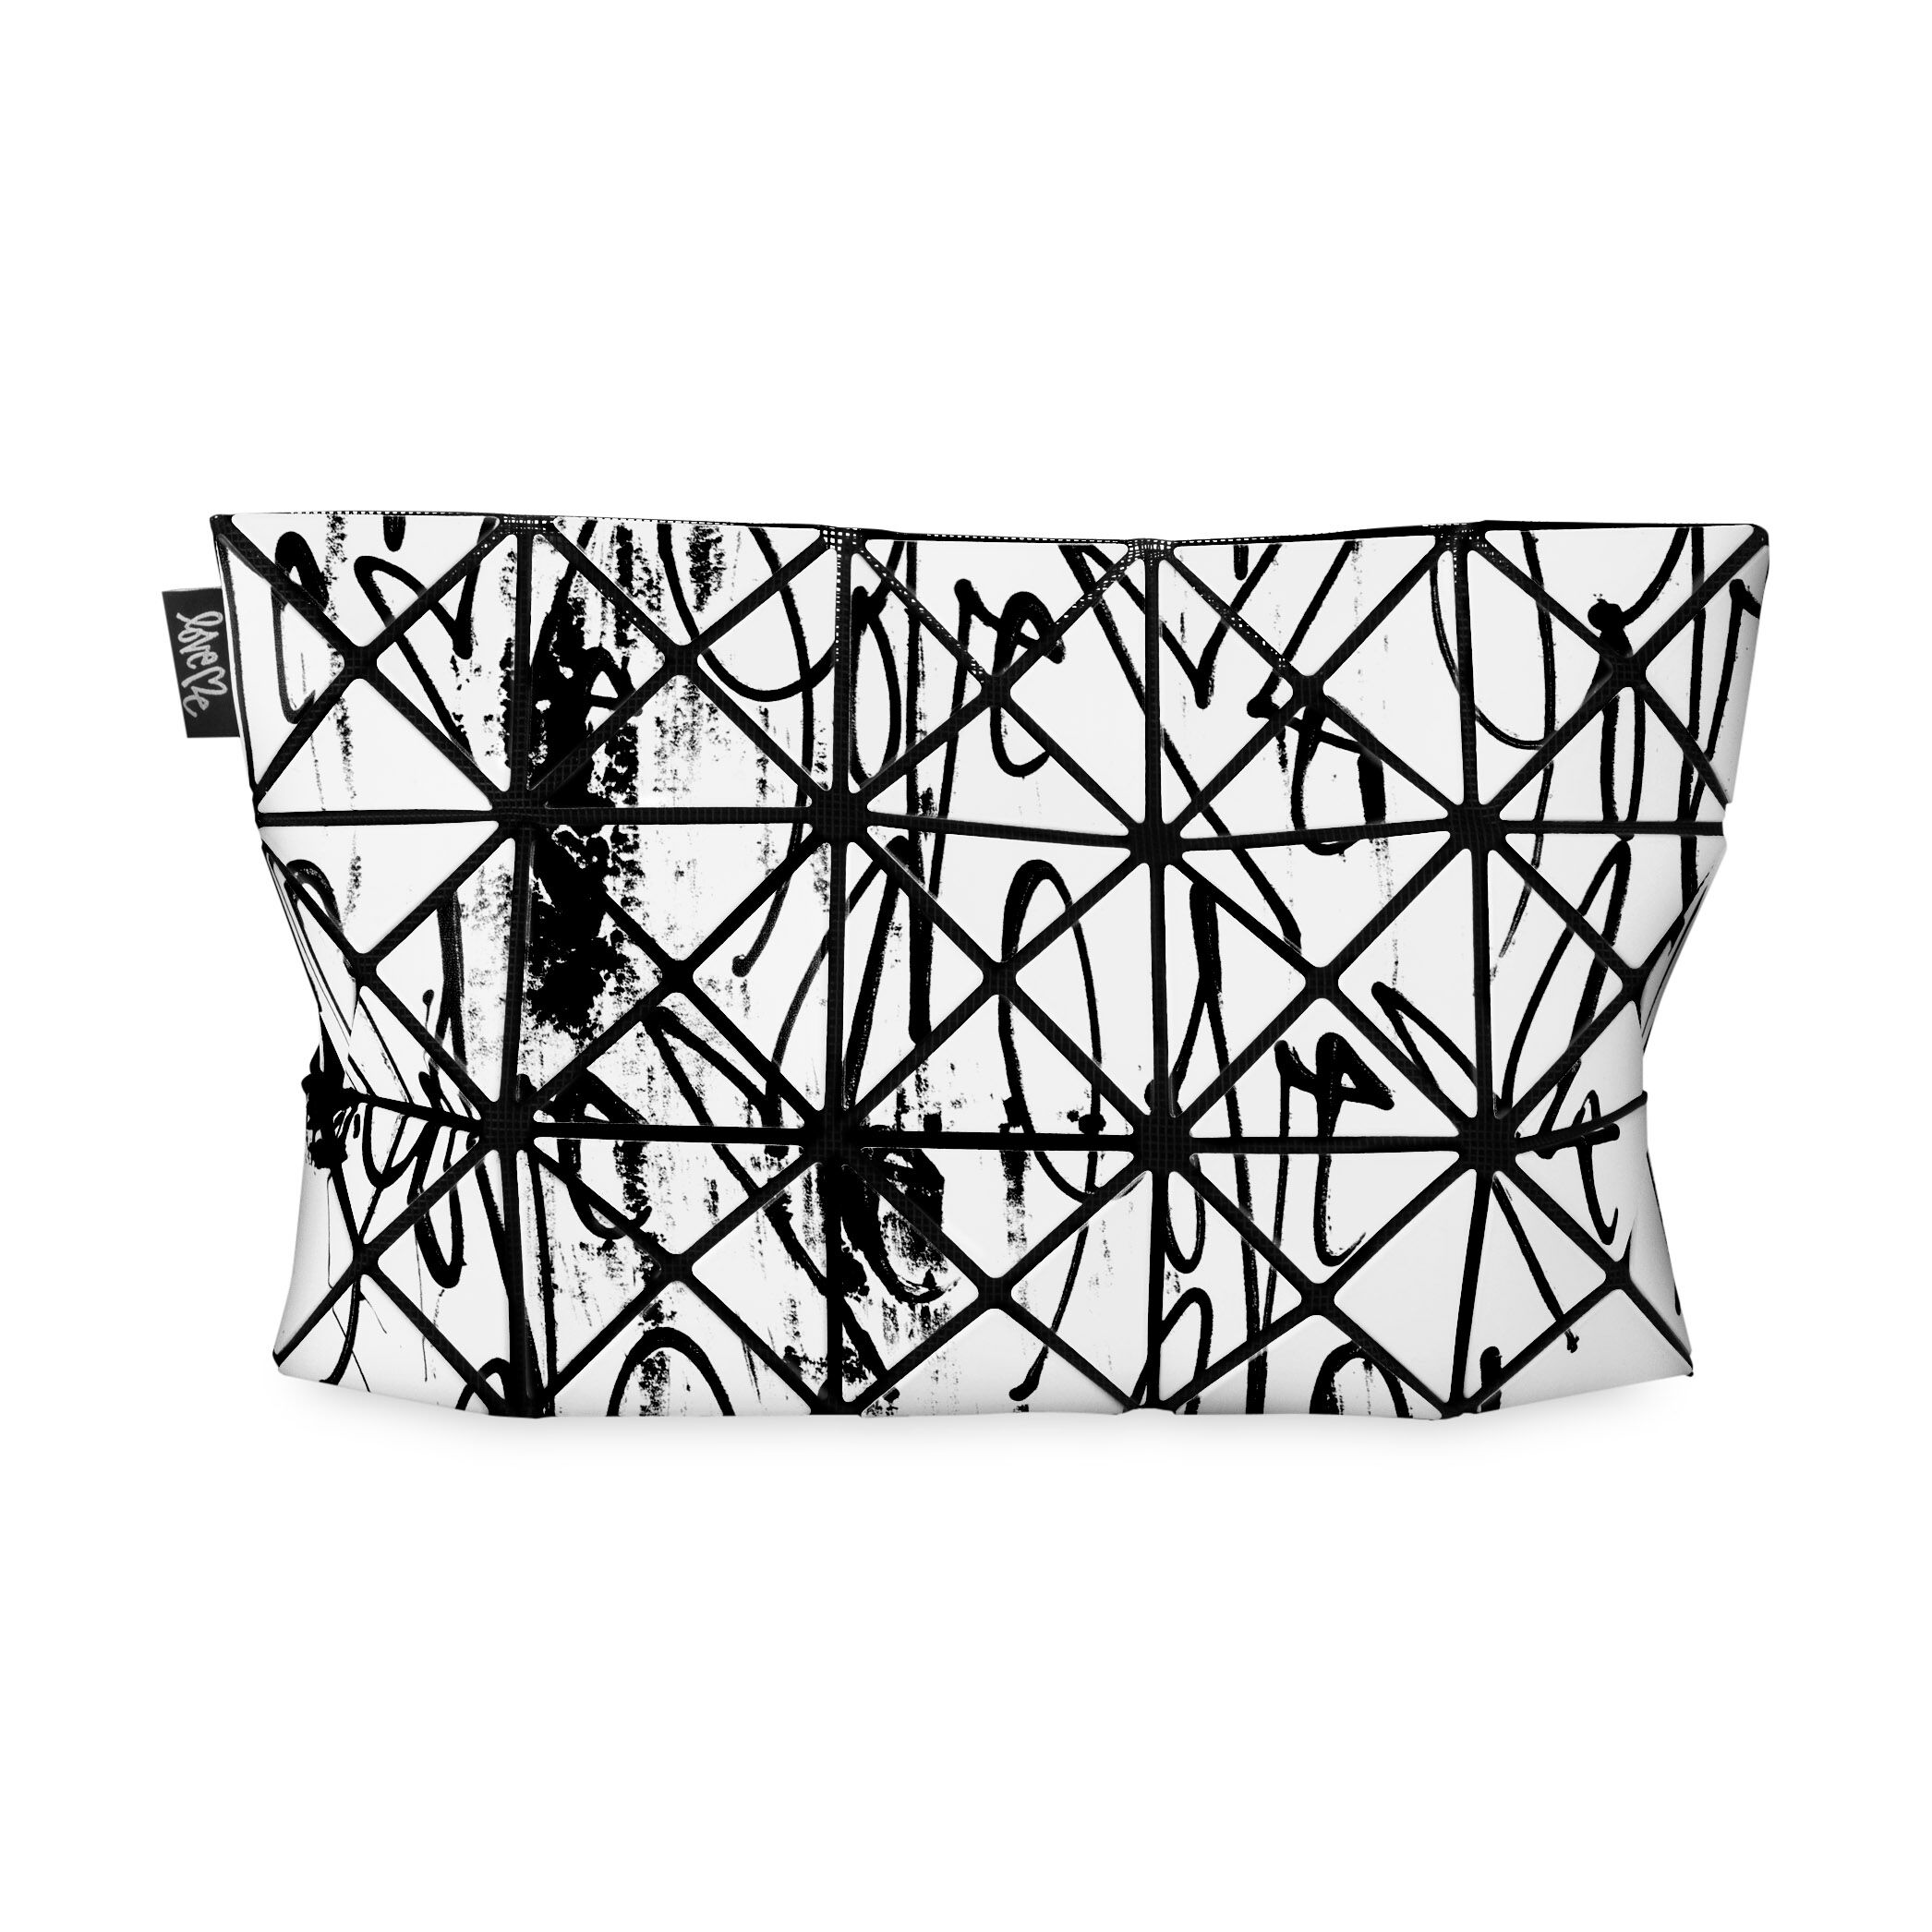 bao bao love me clutch black in color